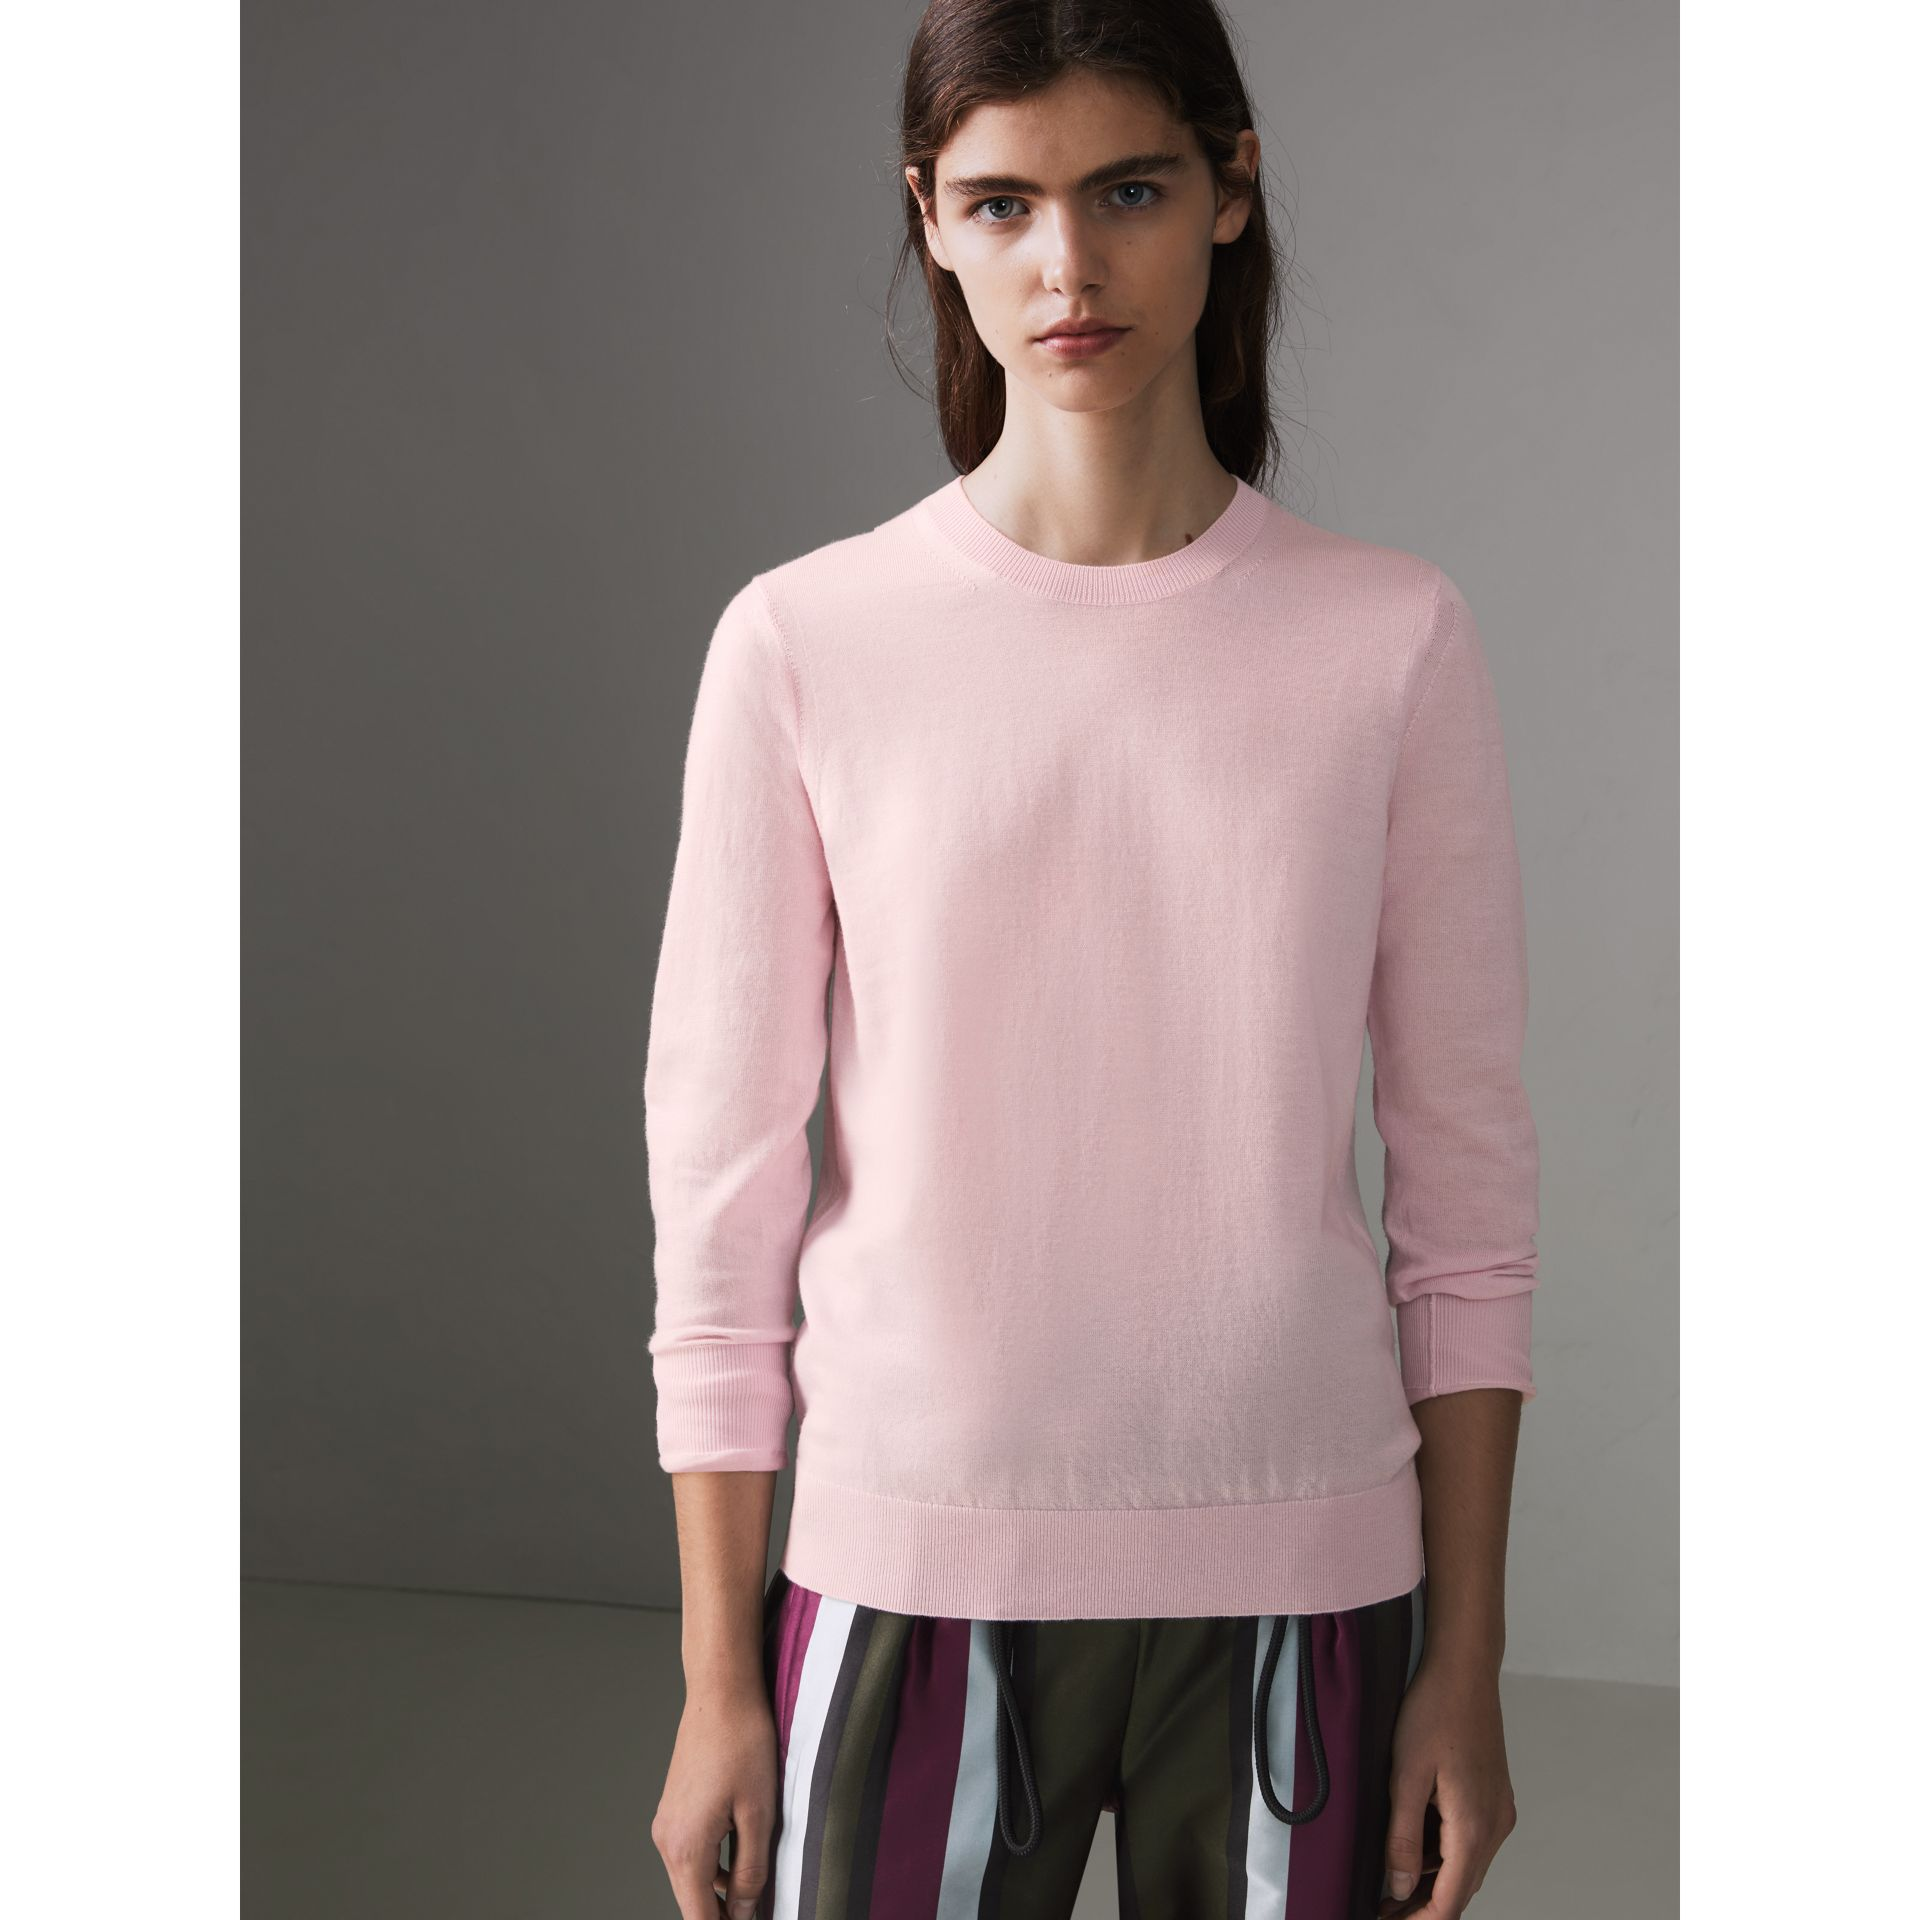 Check Elbow Detail Merino Wool Sweater in Light Pink - Women | Burberry United States - gallery image 4